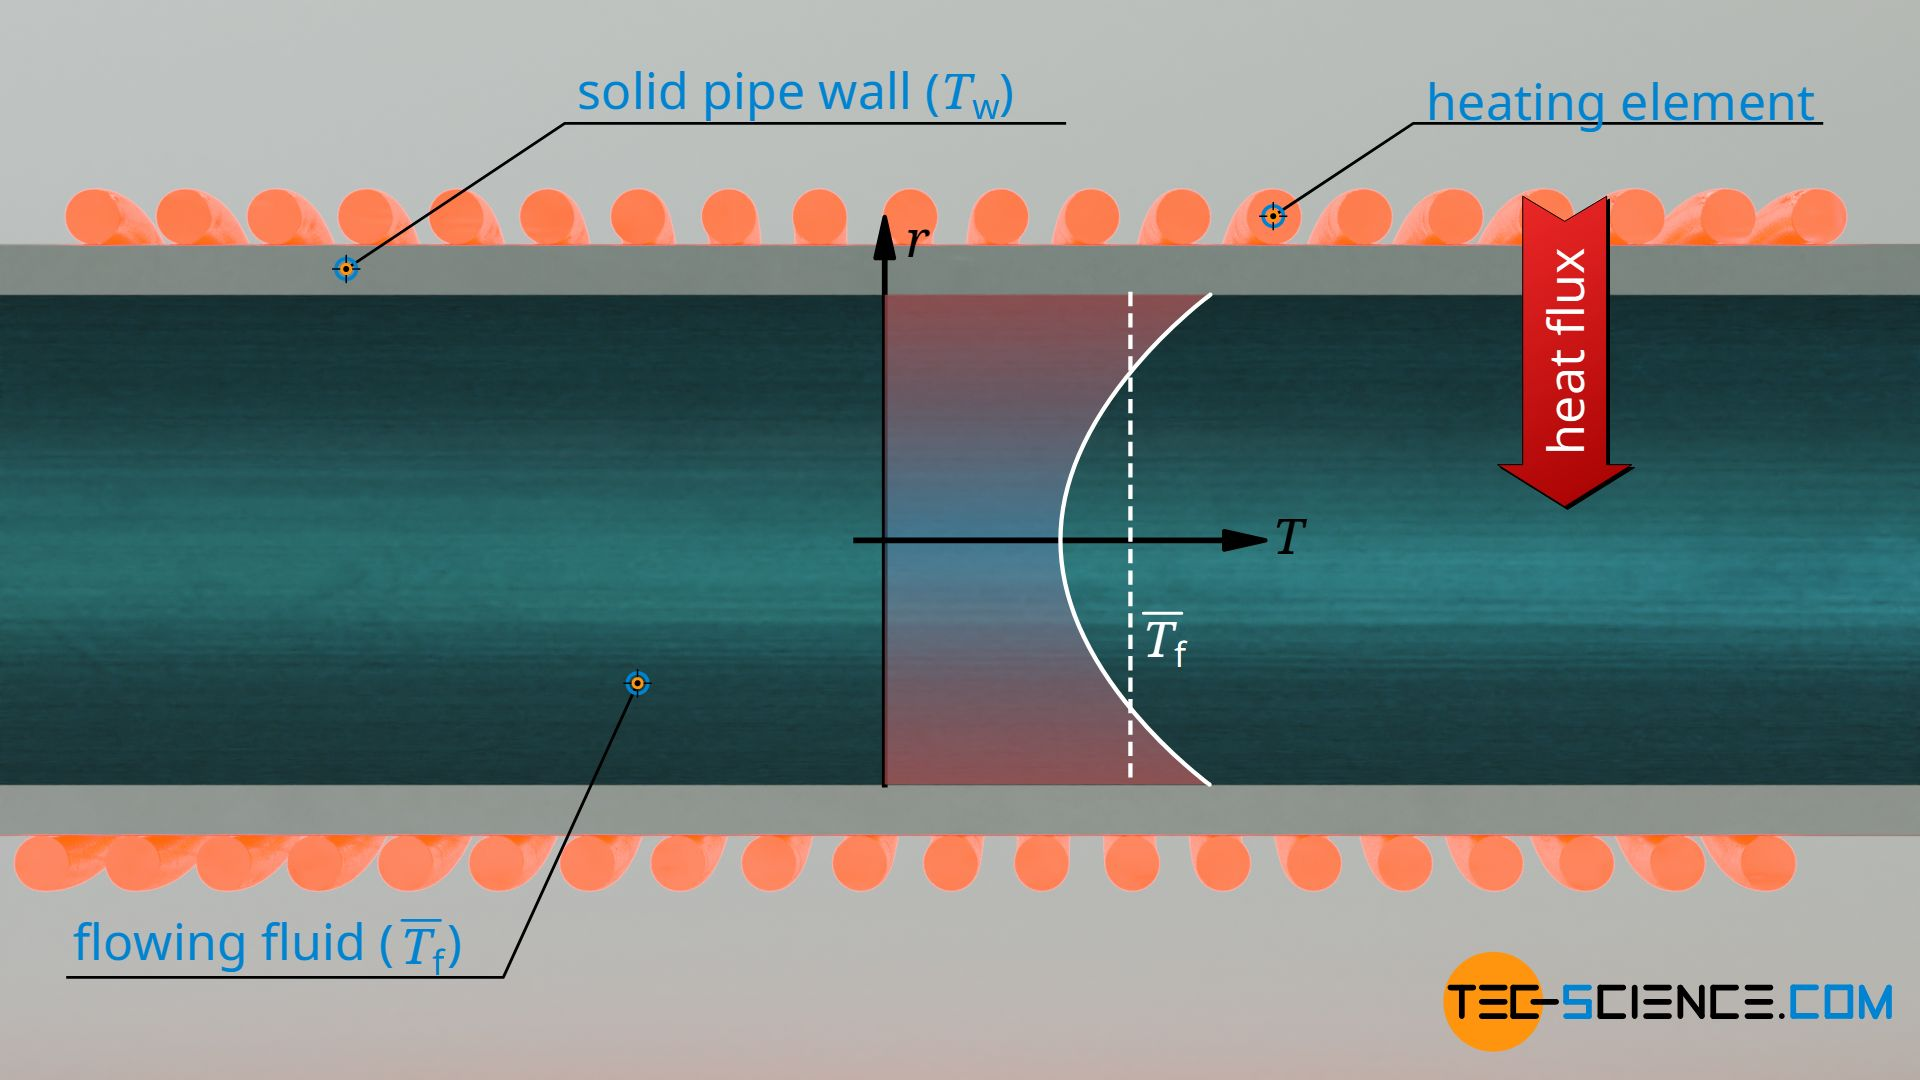 Convective heat transfer using the example of a heated pipe